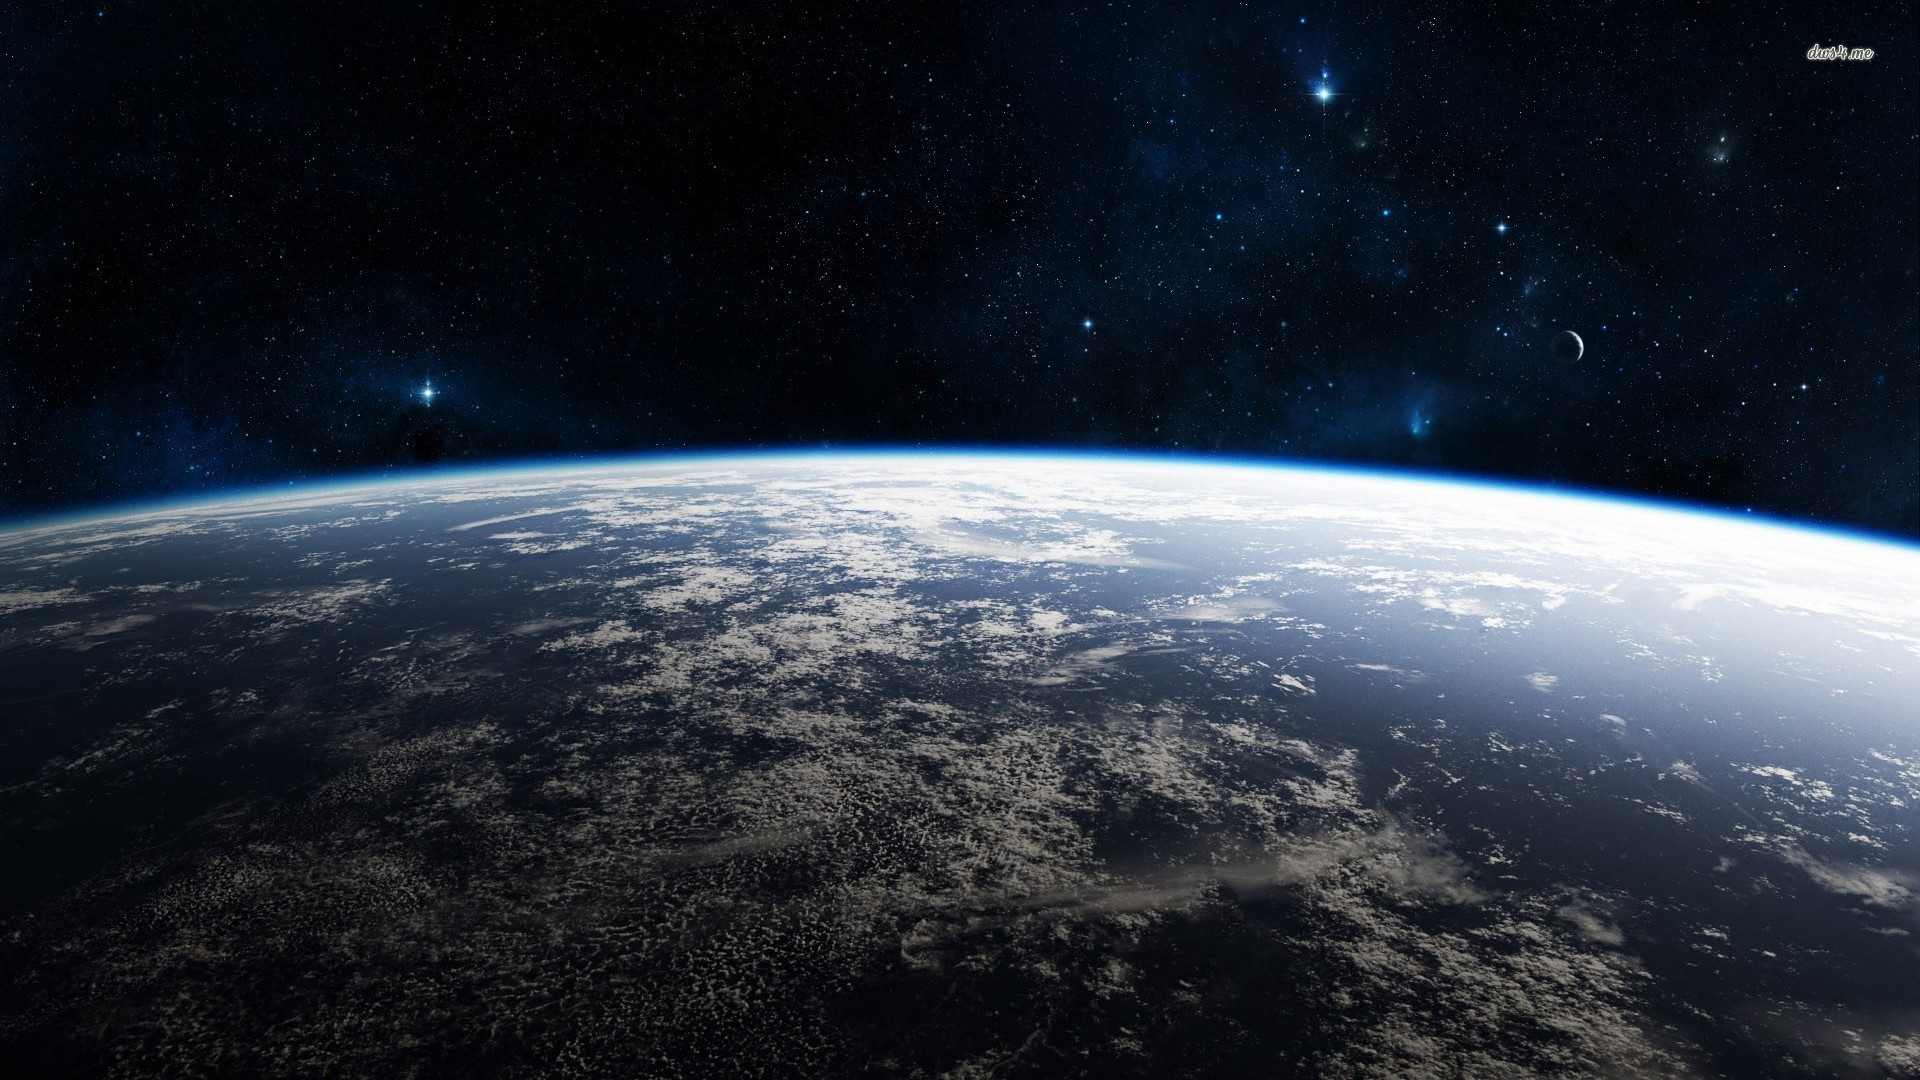 HD Space Wallpaper For Background 15